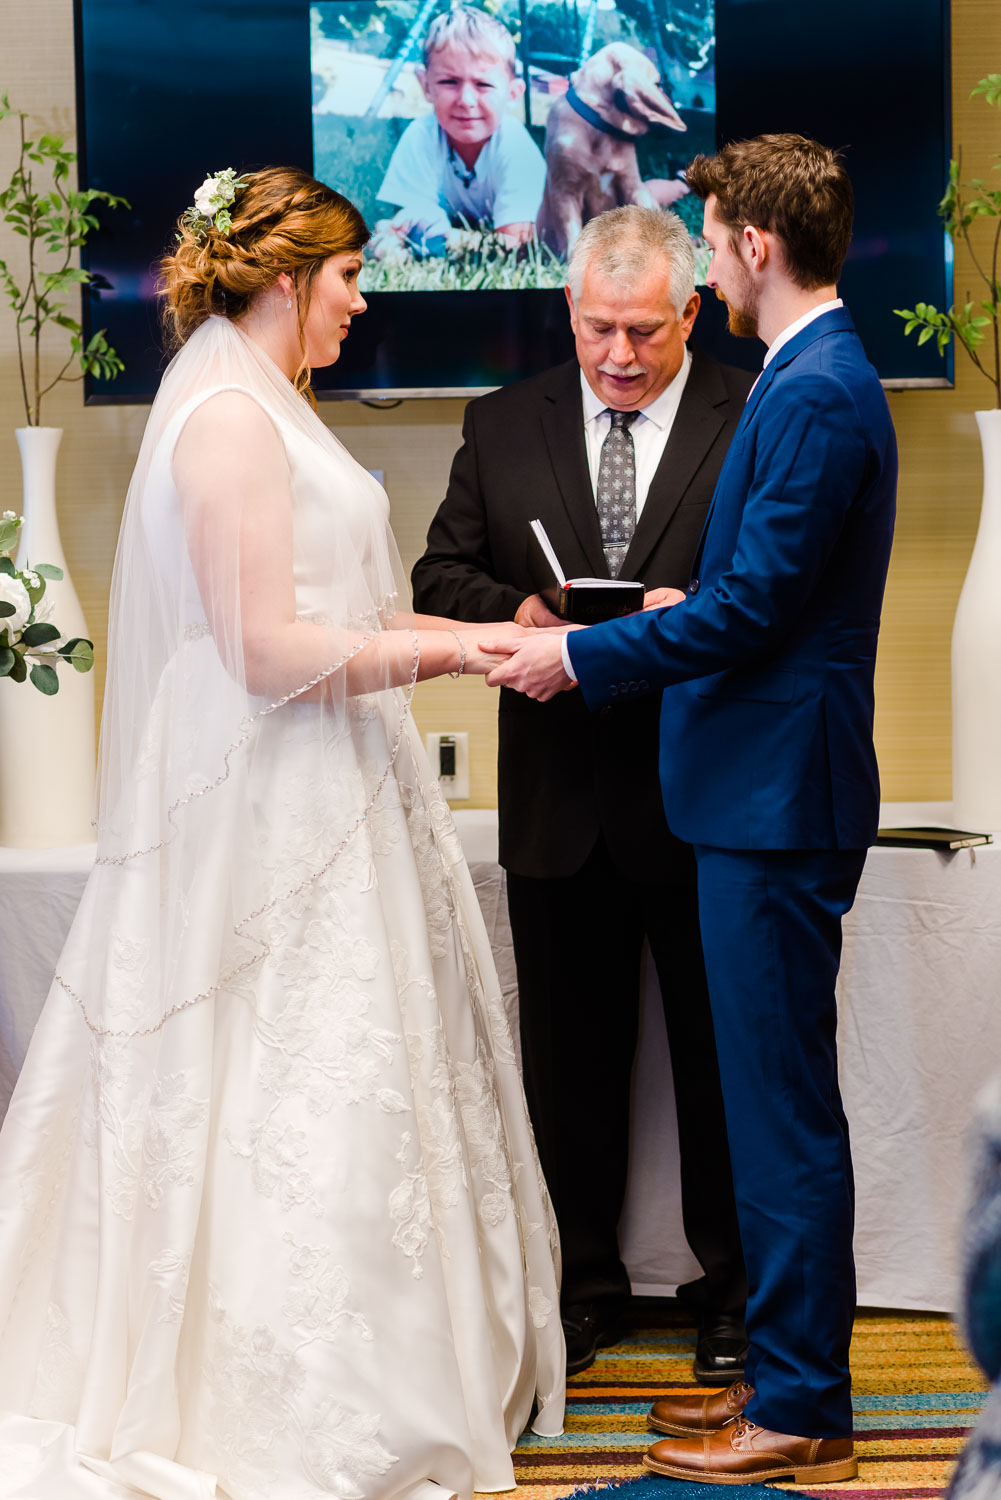 indoor hotel wedding ceremony in Knoxville